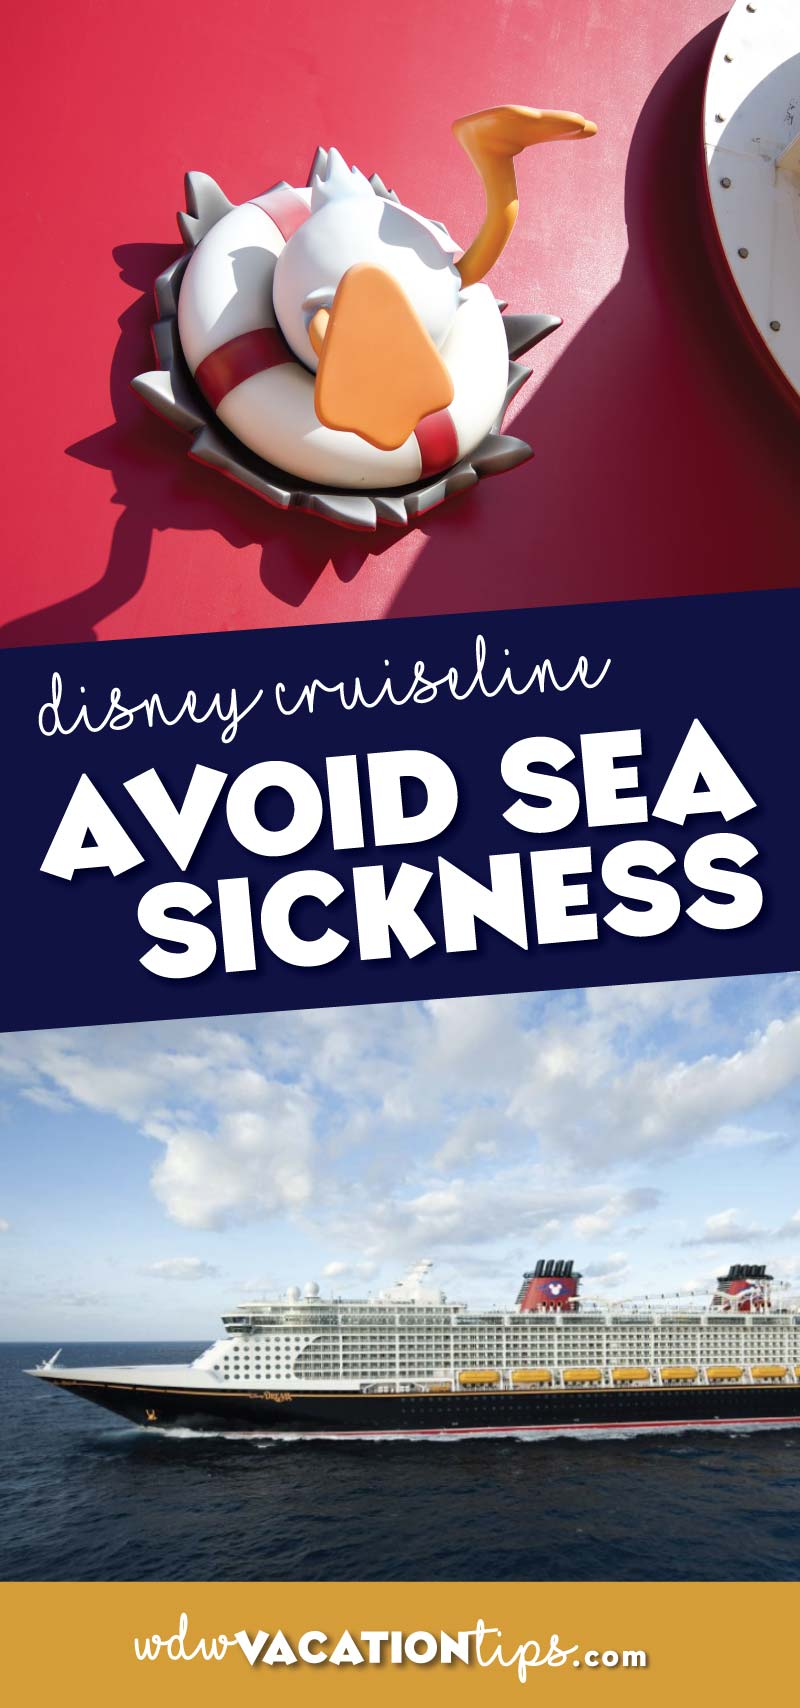 These are my suggestions on how to avoid motion sickness on a Disney Cruise because there is nothing worse than paying the premium for a Disney cruise and being seasick the whole time.